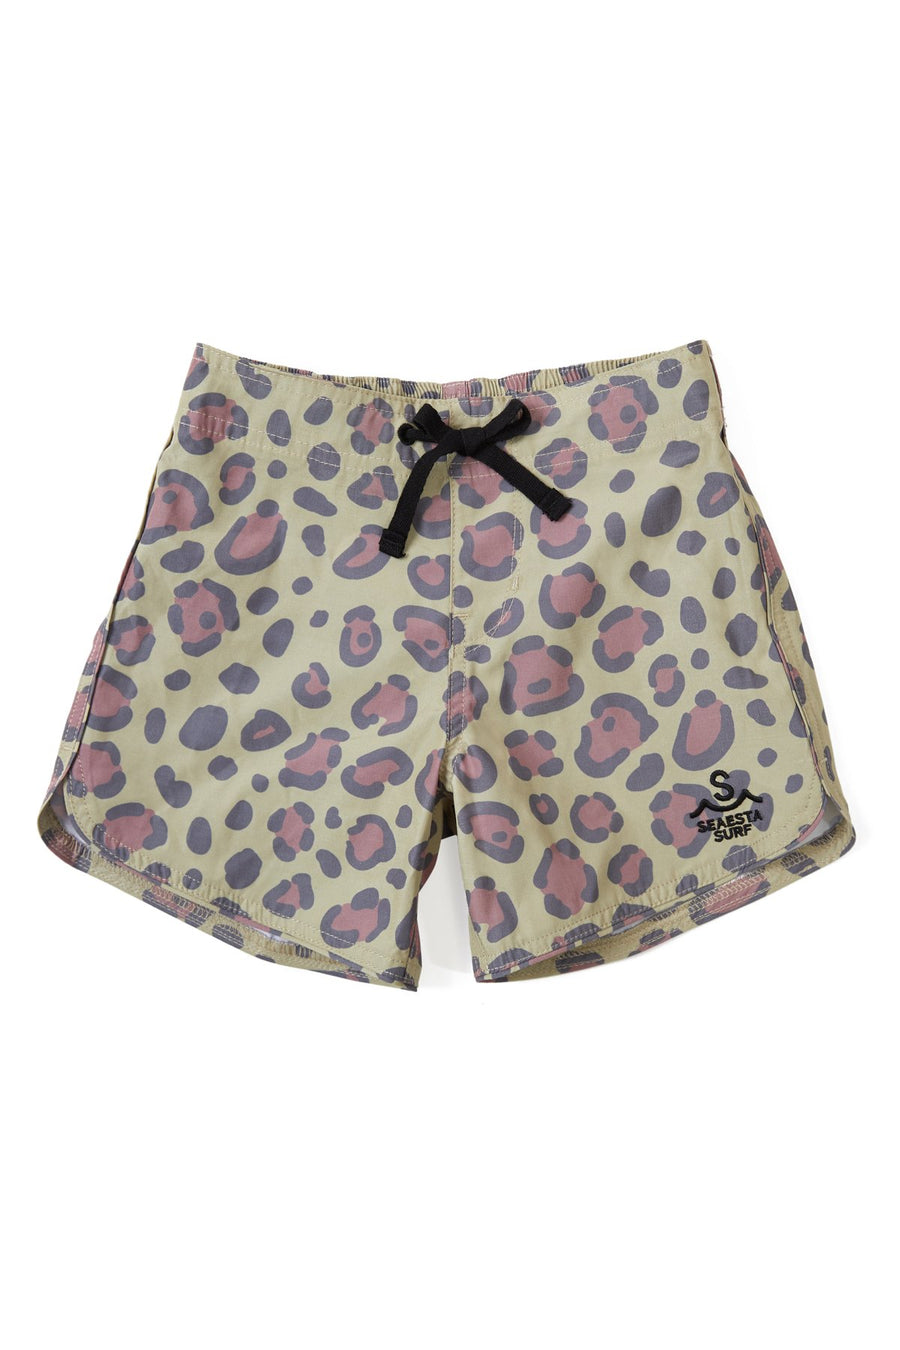 Calico Crab / Sand Boardshorts